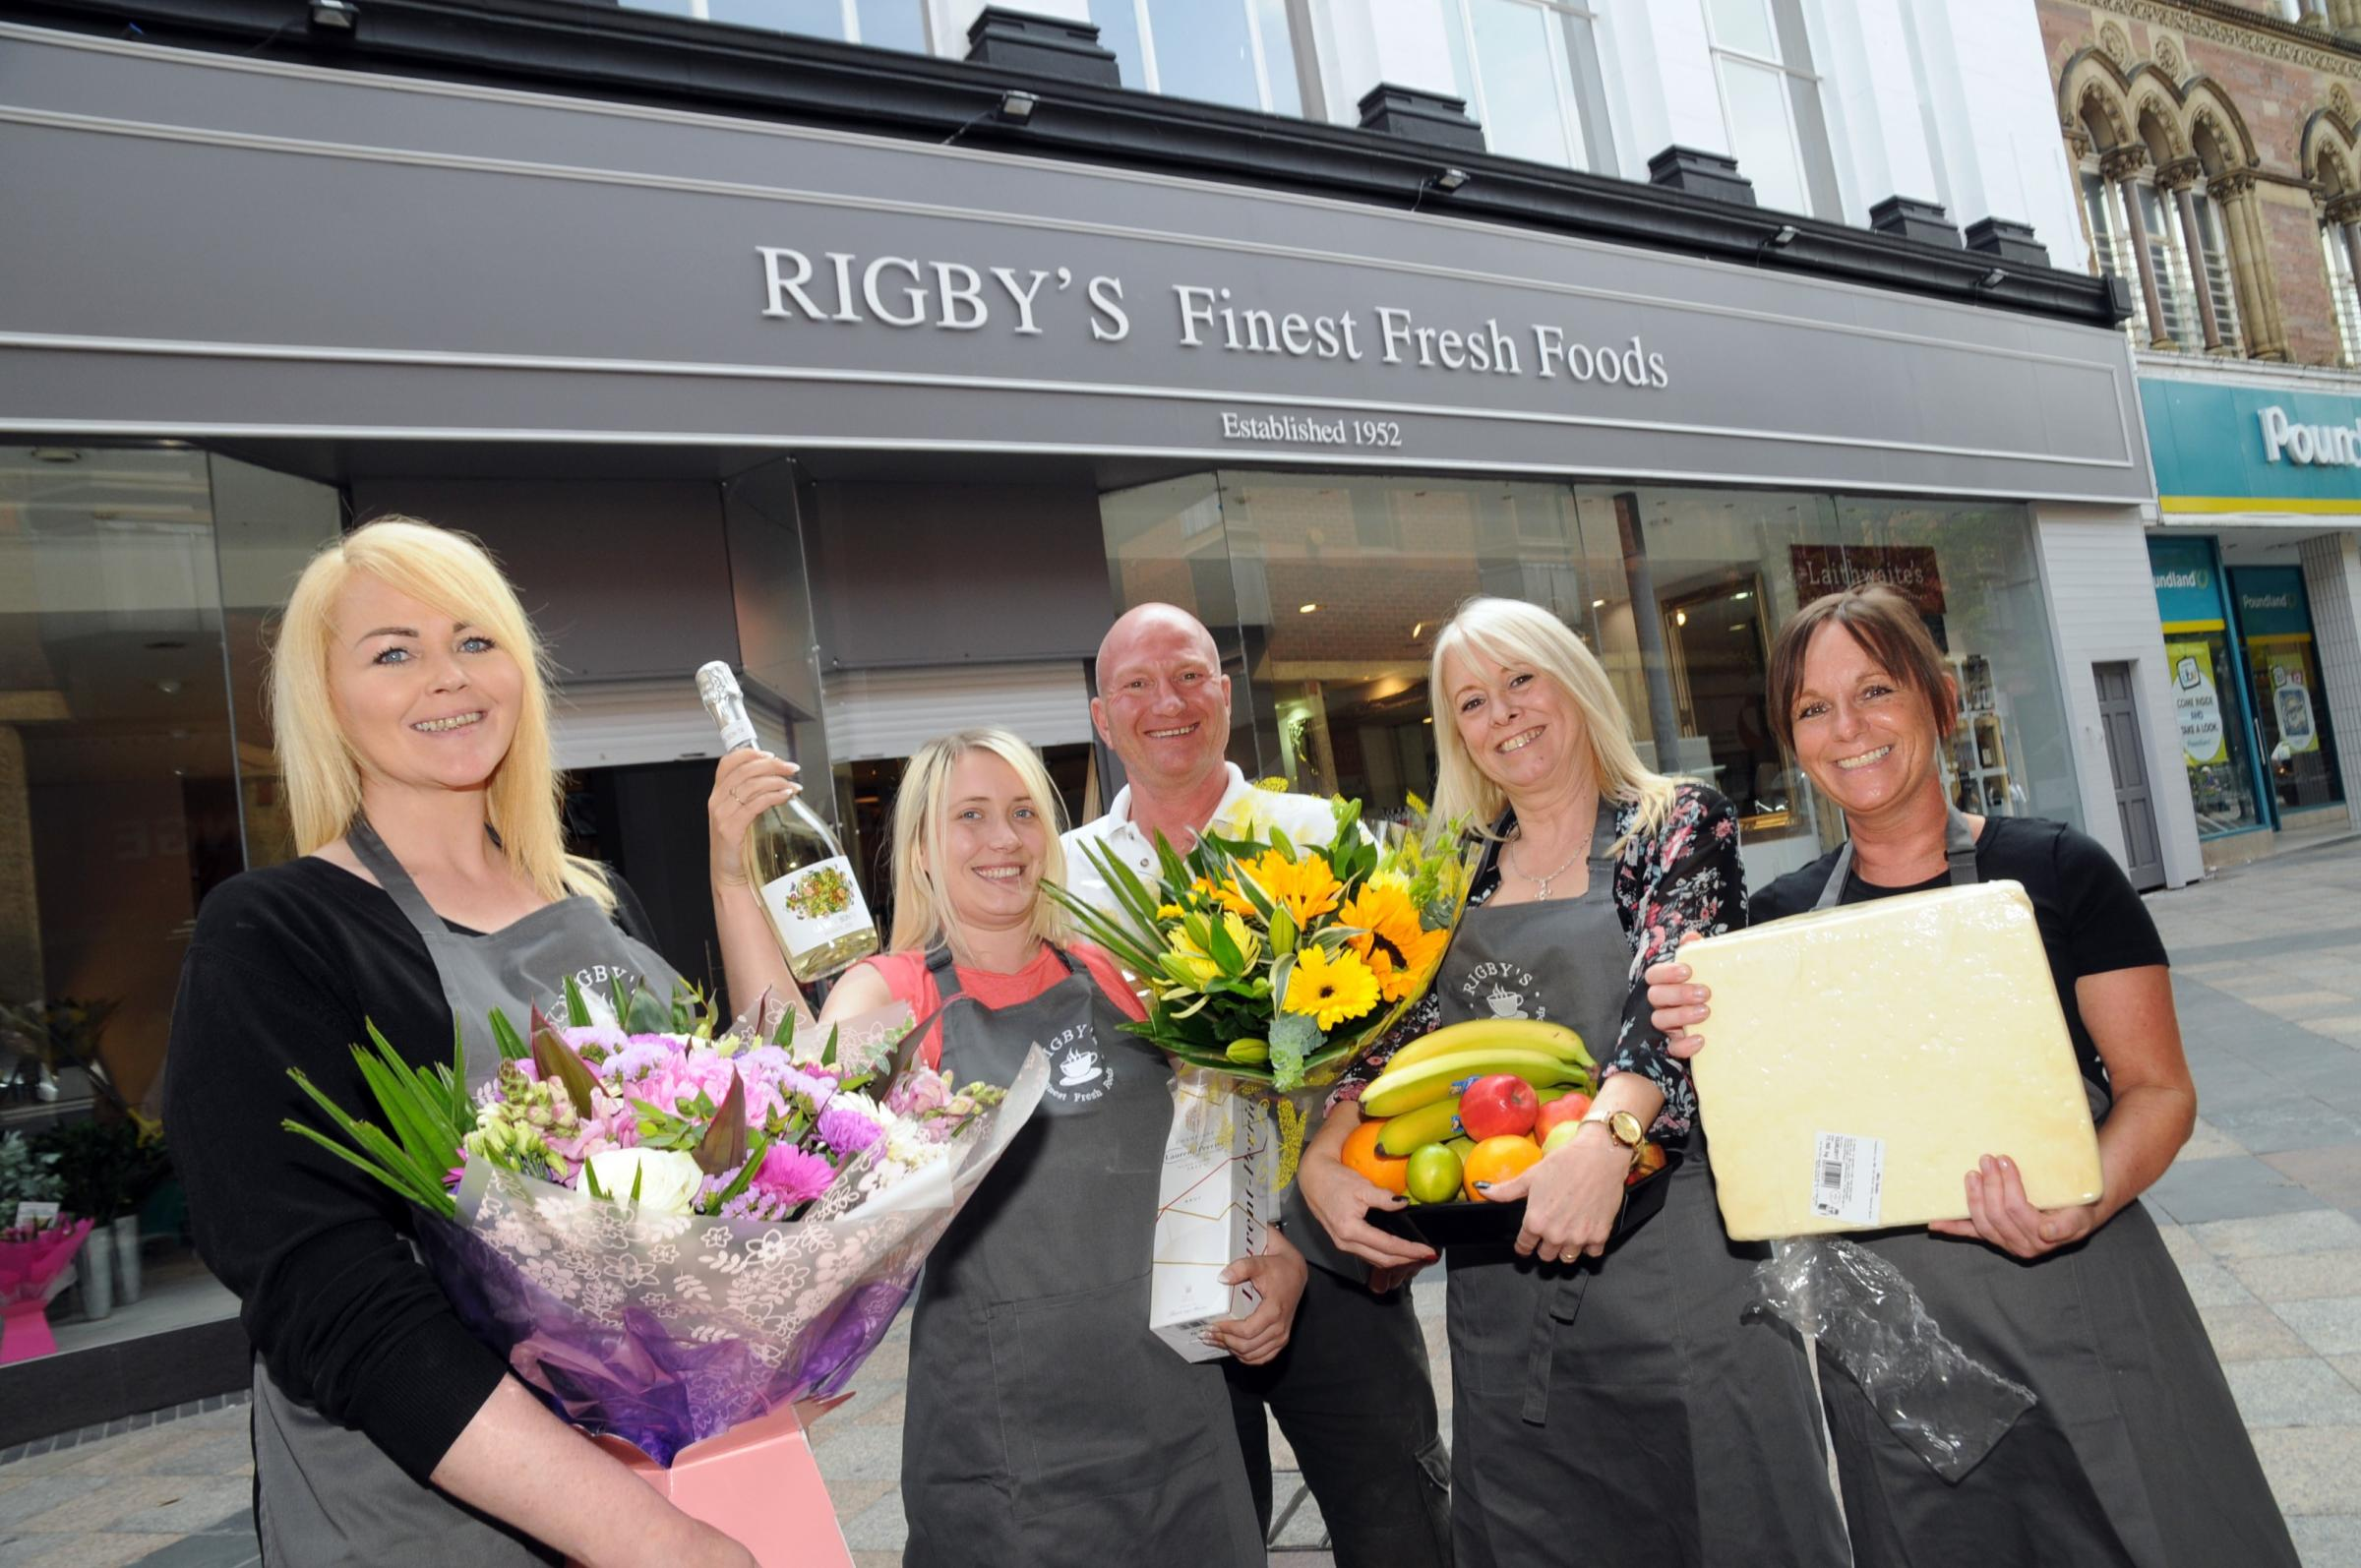 Rigby's Finest Fresh Foods has been ordered to pay more than £50,000 to 12 former employees by a tribunal.